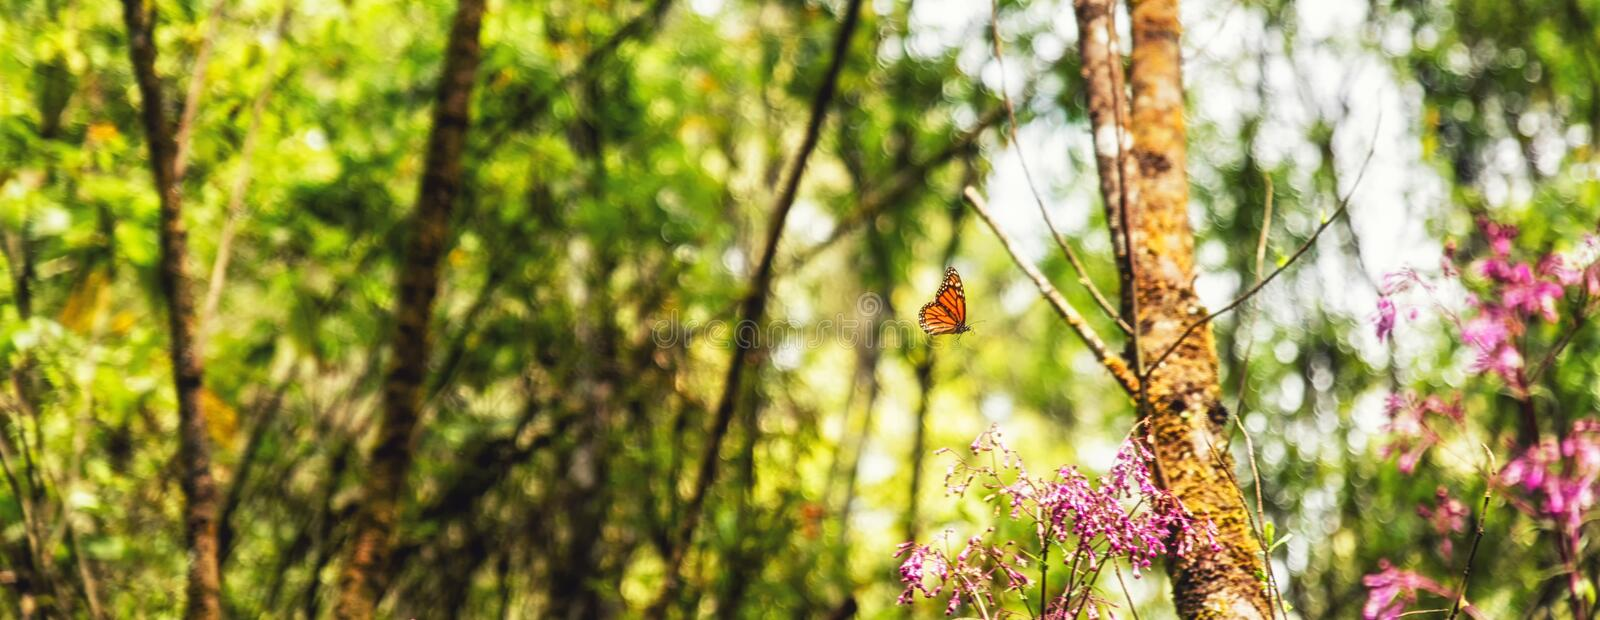 A monarch butterfly and pink flowers. In the Monarch Butterfly Biosphere Reserve, Michoacan Mexico royalty free stock photos